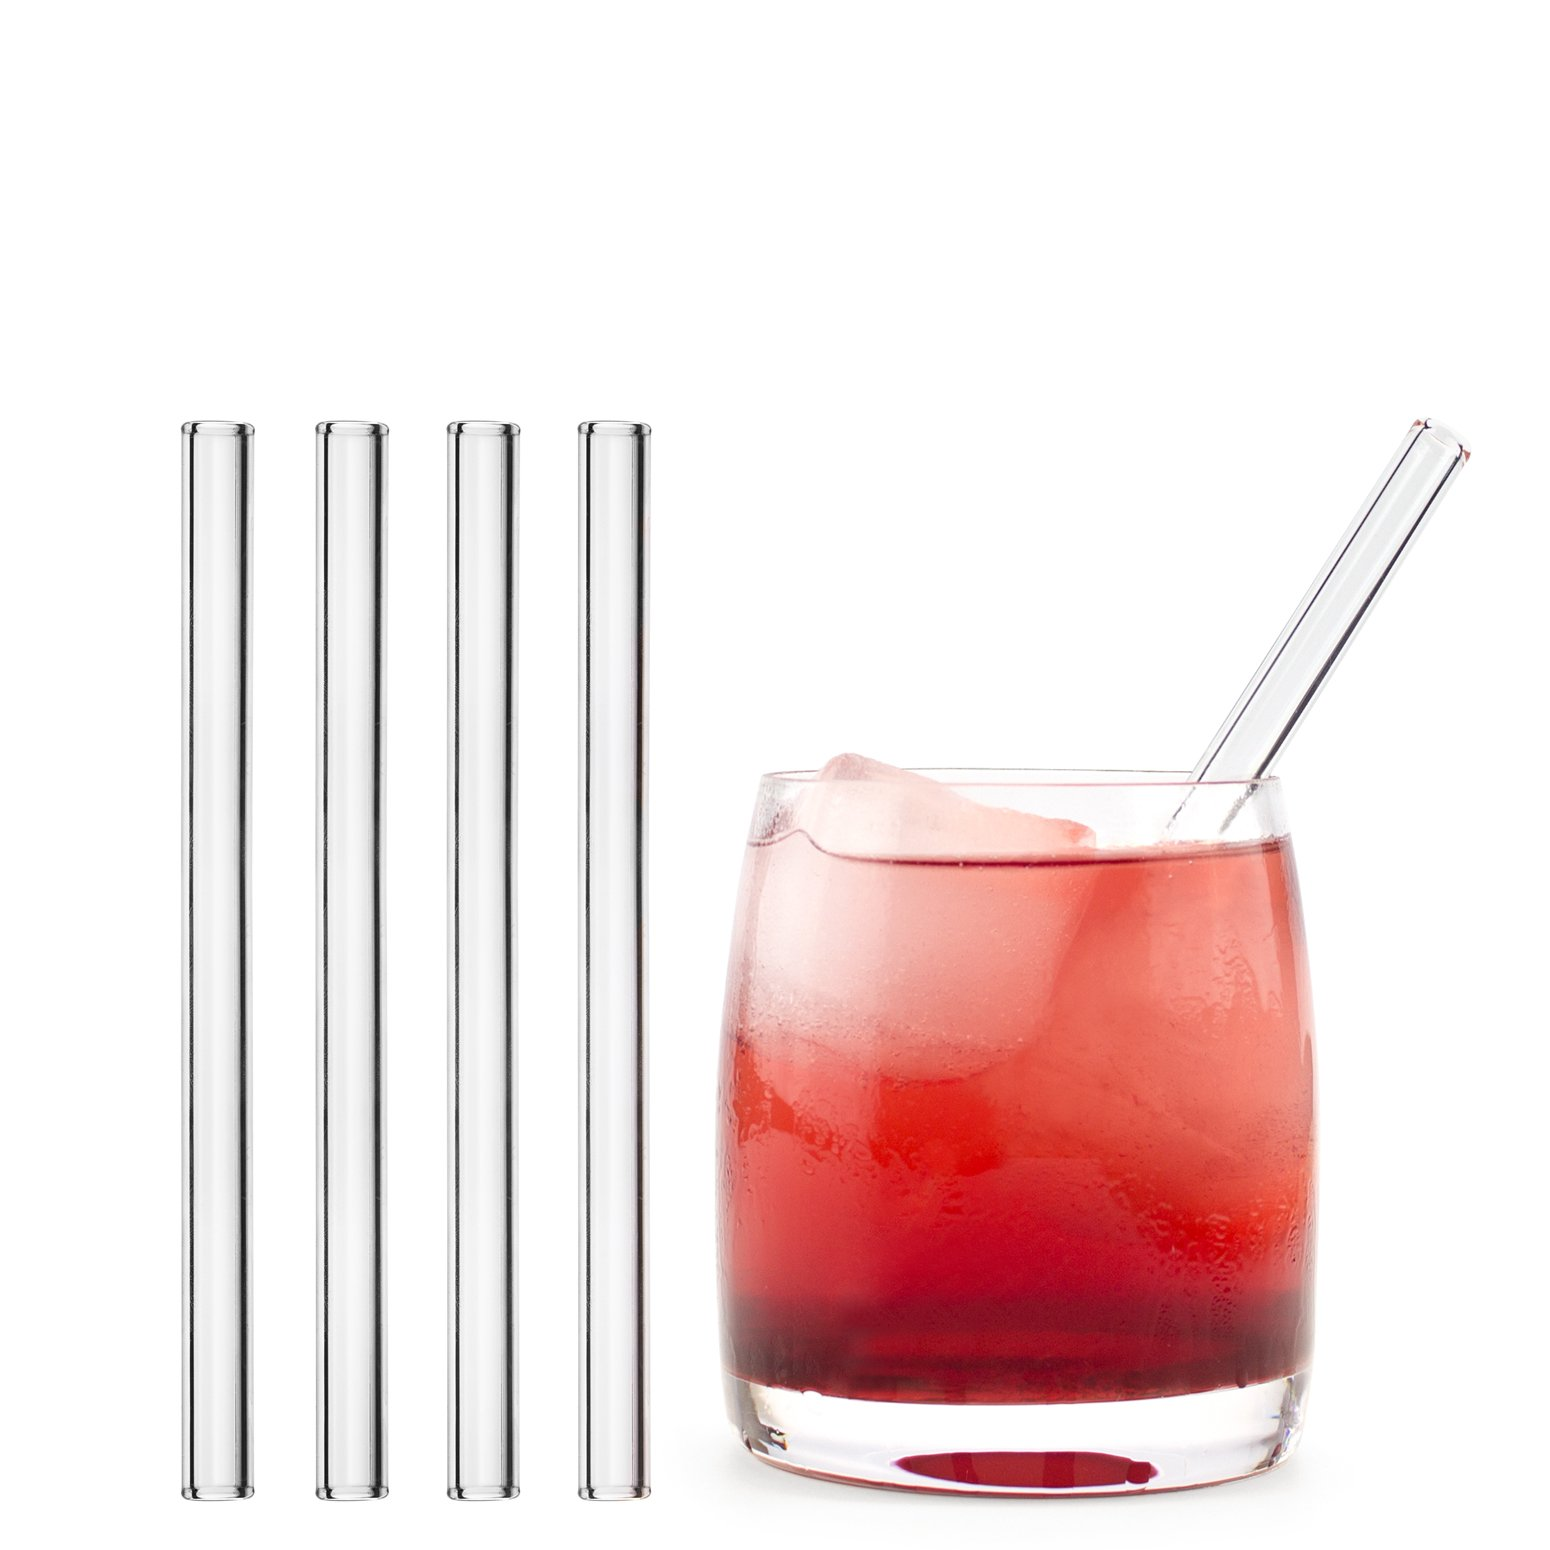 HALM  Glass Straws - 4 Reusable Straws + Plastic-Free Cleaning Brush - Made in Germany - Dishwasher Safe - Eco-Friendly - Straight - 15cm (6 in) x 0.9 cm - Perfect for Smoothies, Cocktails